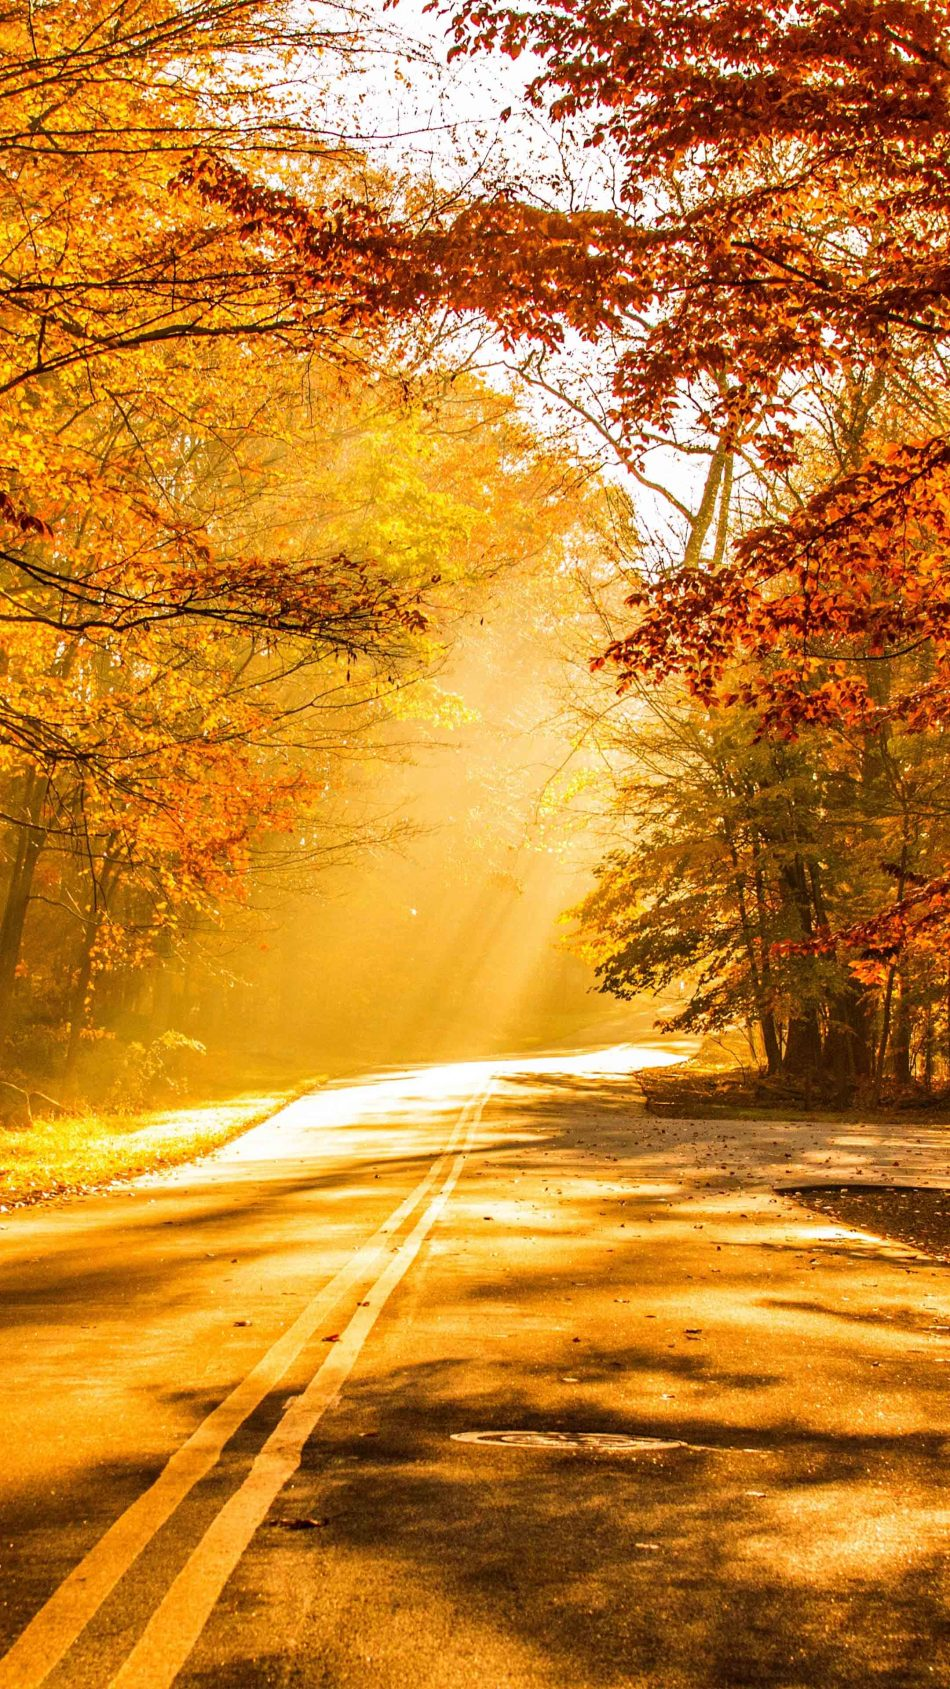 Fall Foliage Autumn Road 4K Ultra HD Mobile Wallpaper